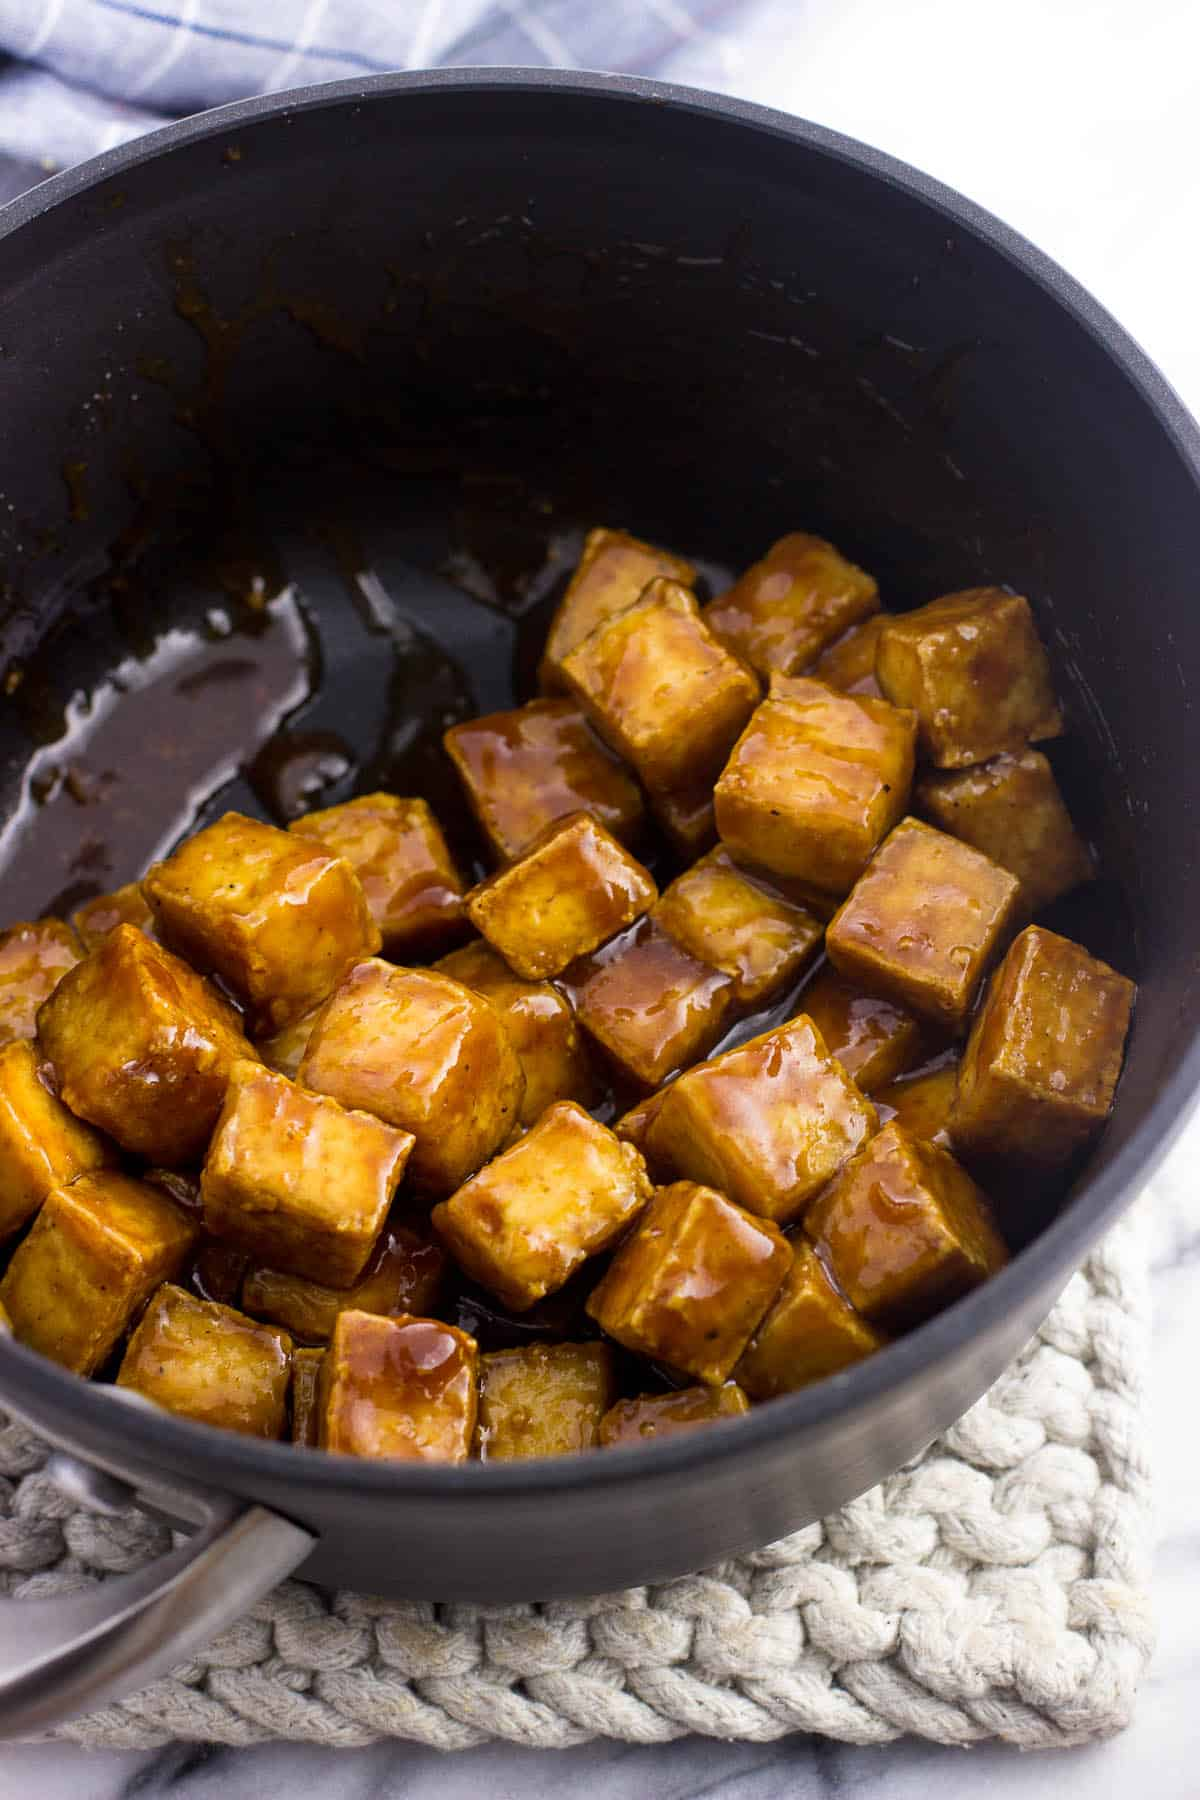 Cooked tofu cubes in a medium saucepan tossed in glaze